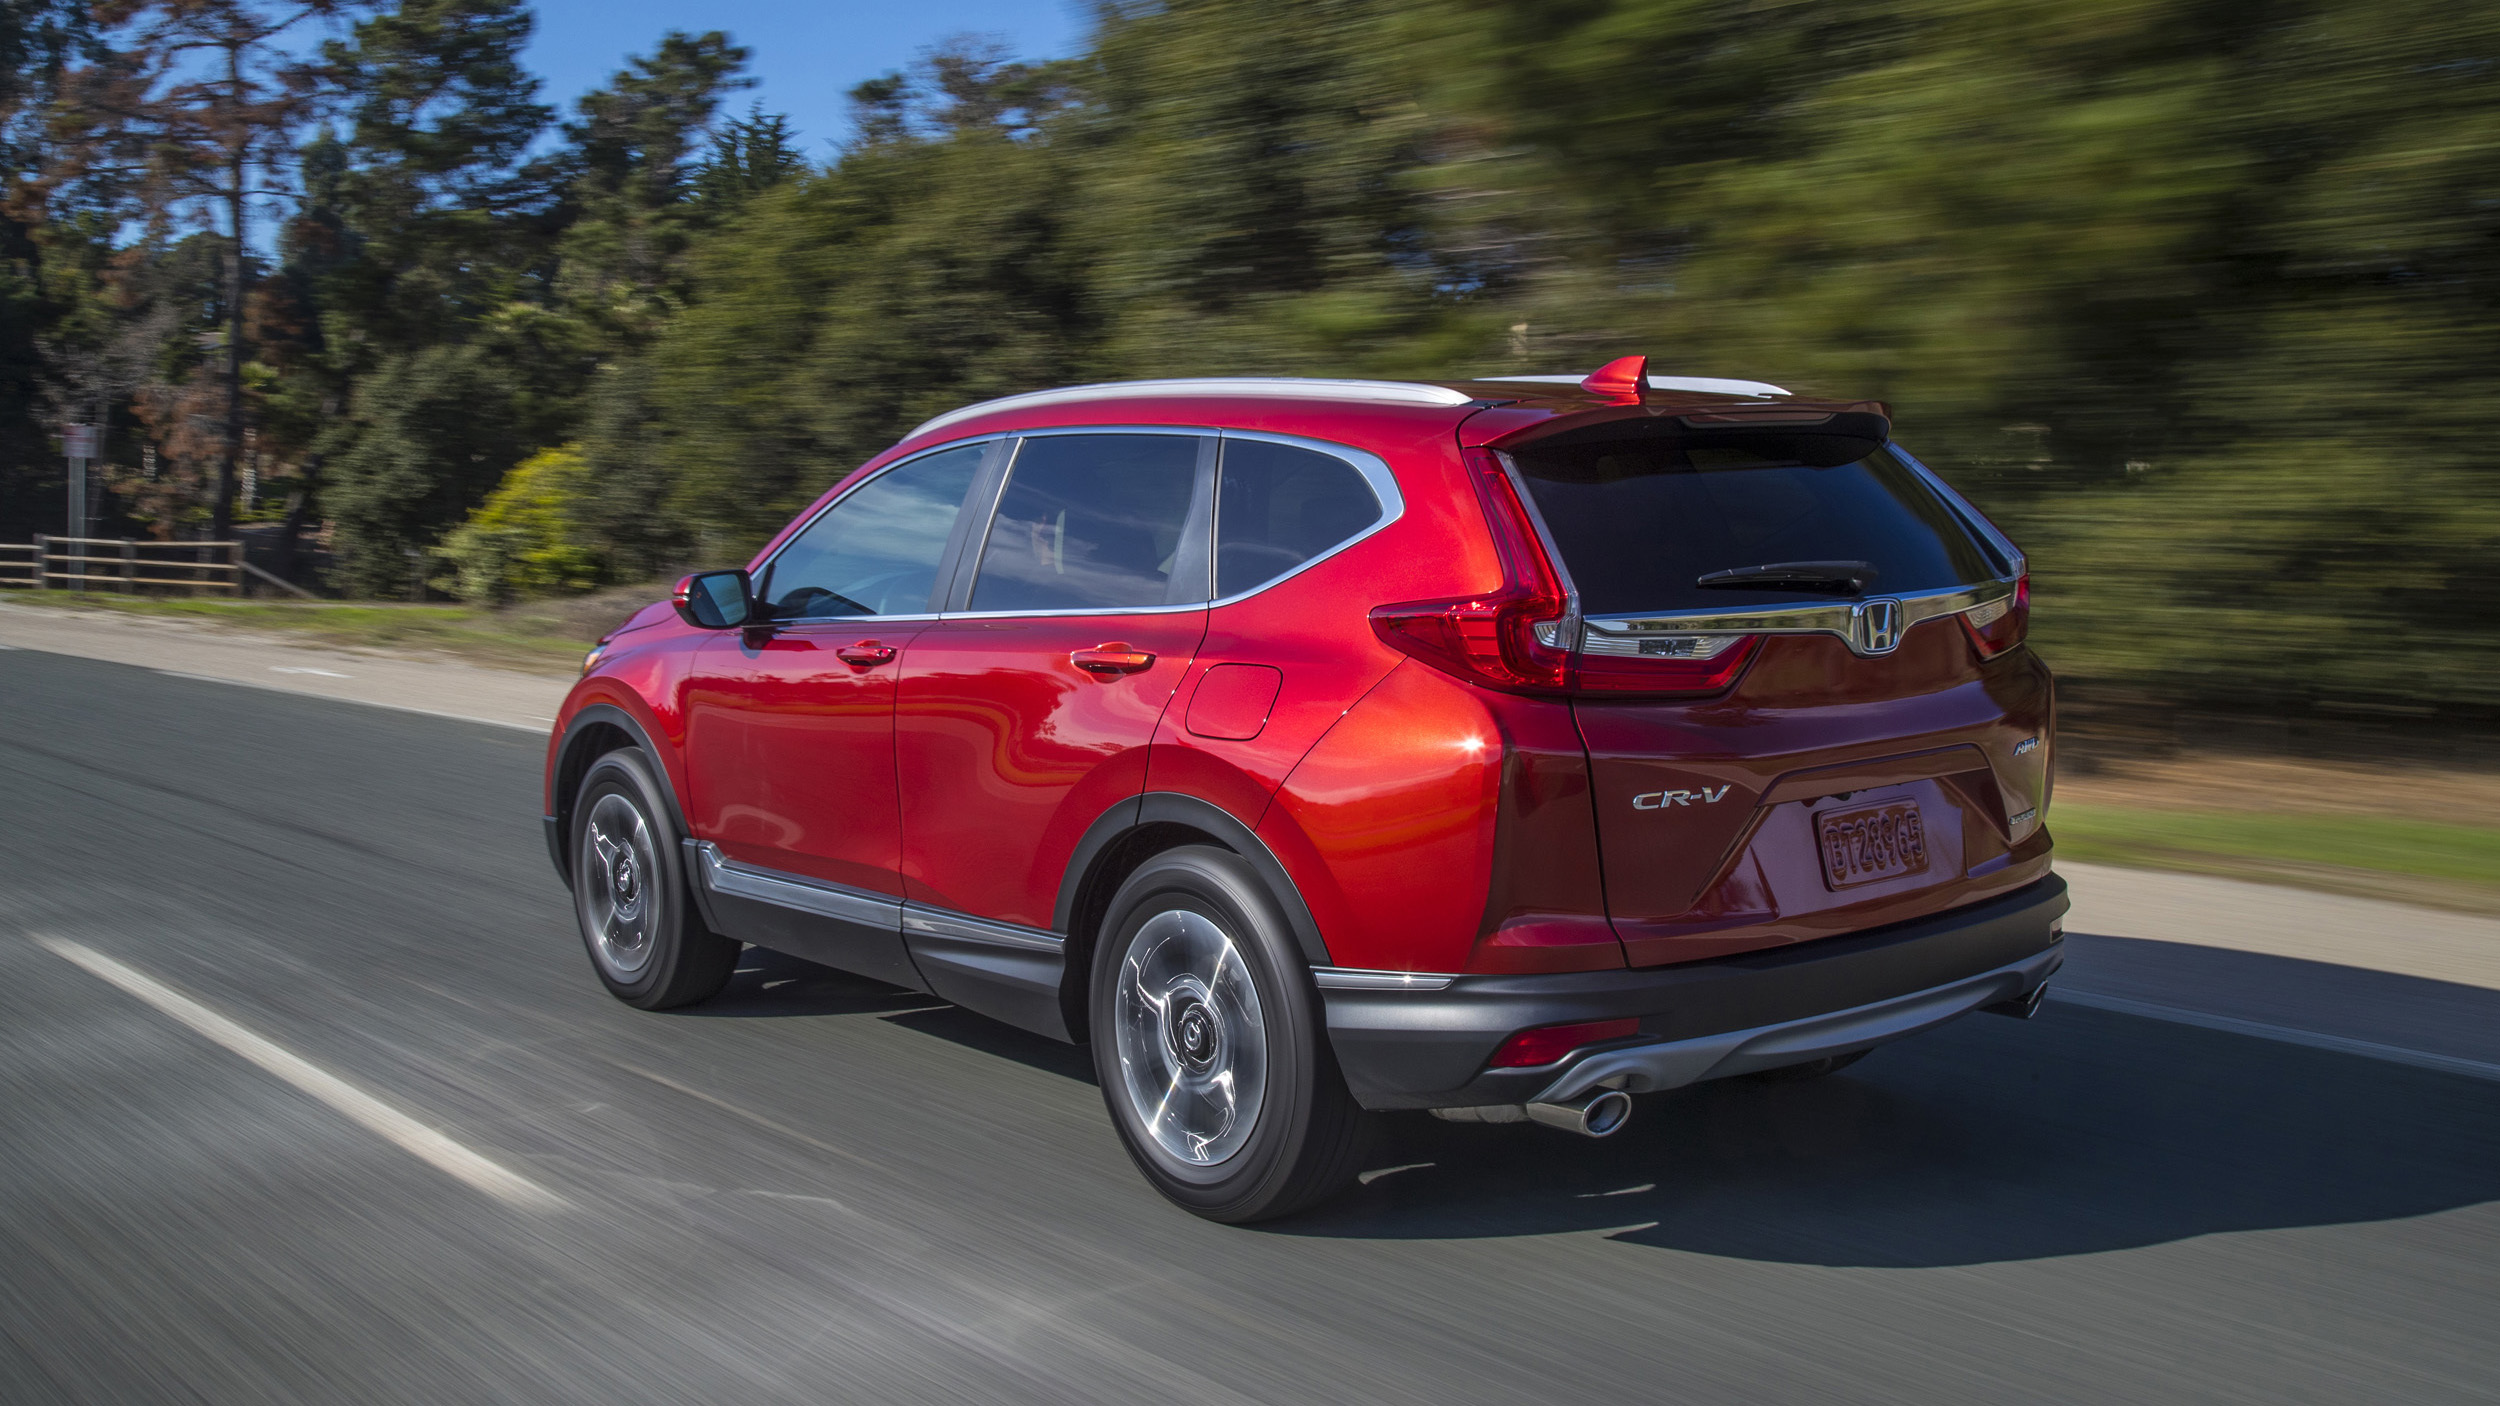 2019 Honda CR-V Reviews | Price, specs, features and photos